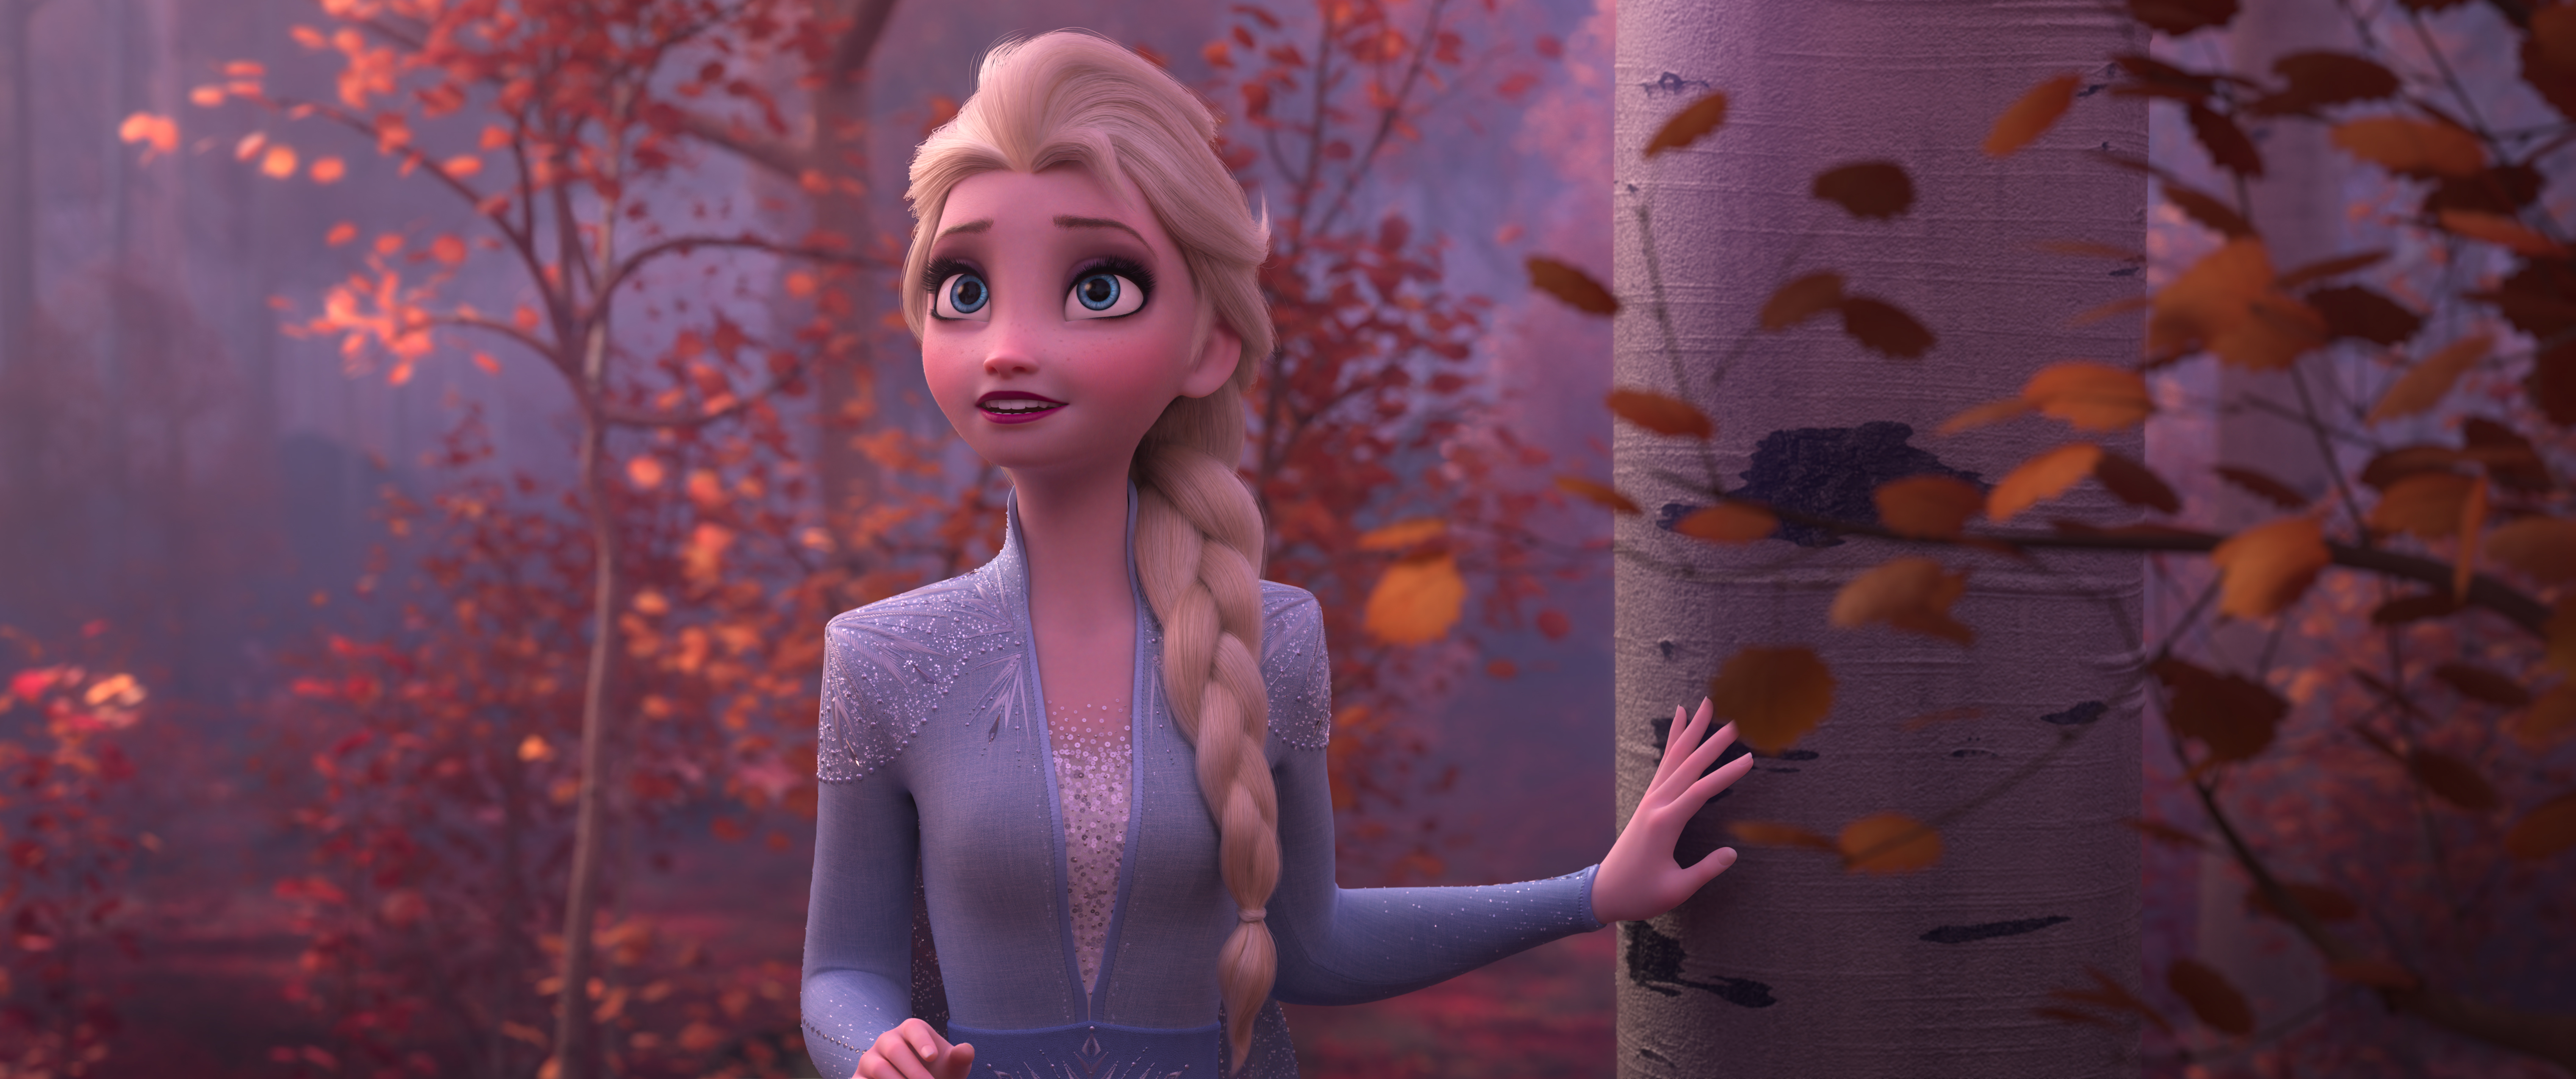 Elsa seems about to burst into song in Frozen 2.